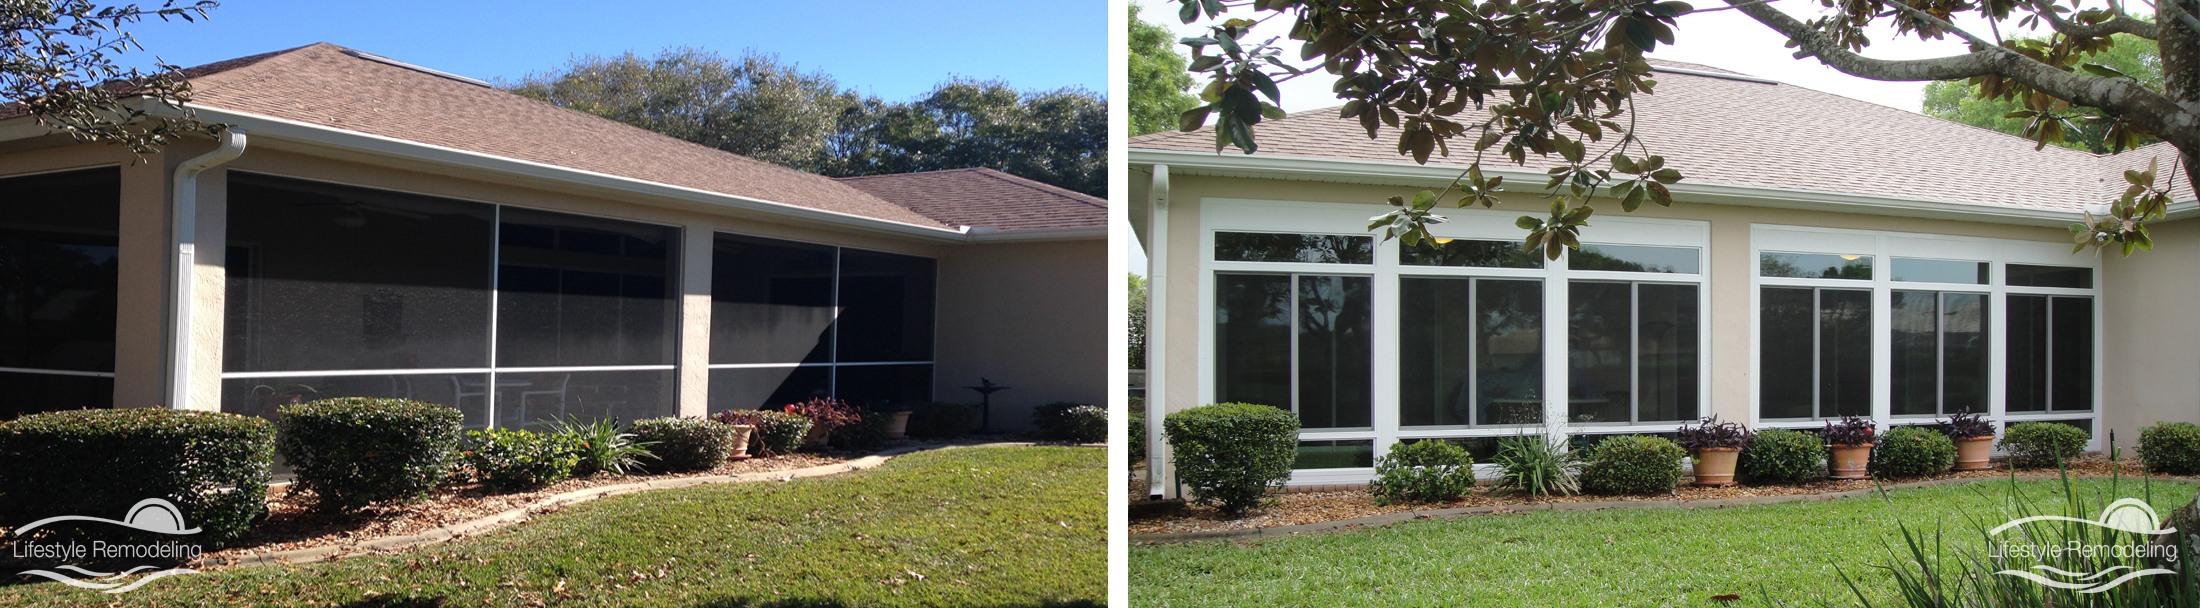 Patio Enclosure Before  After Gallery  Lifestyle Remodeling  Tampa Bay Sunrooms WalkIn Tubs